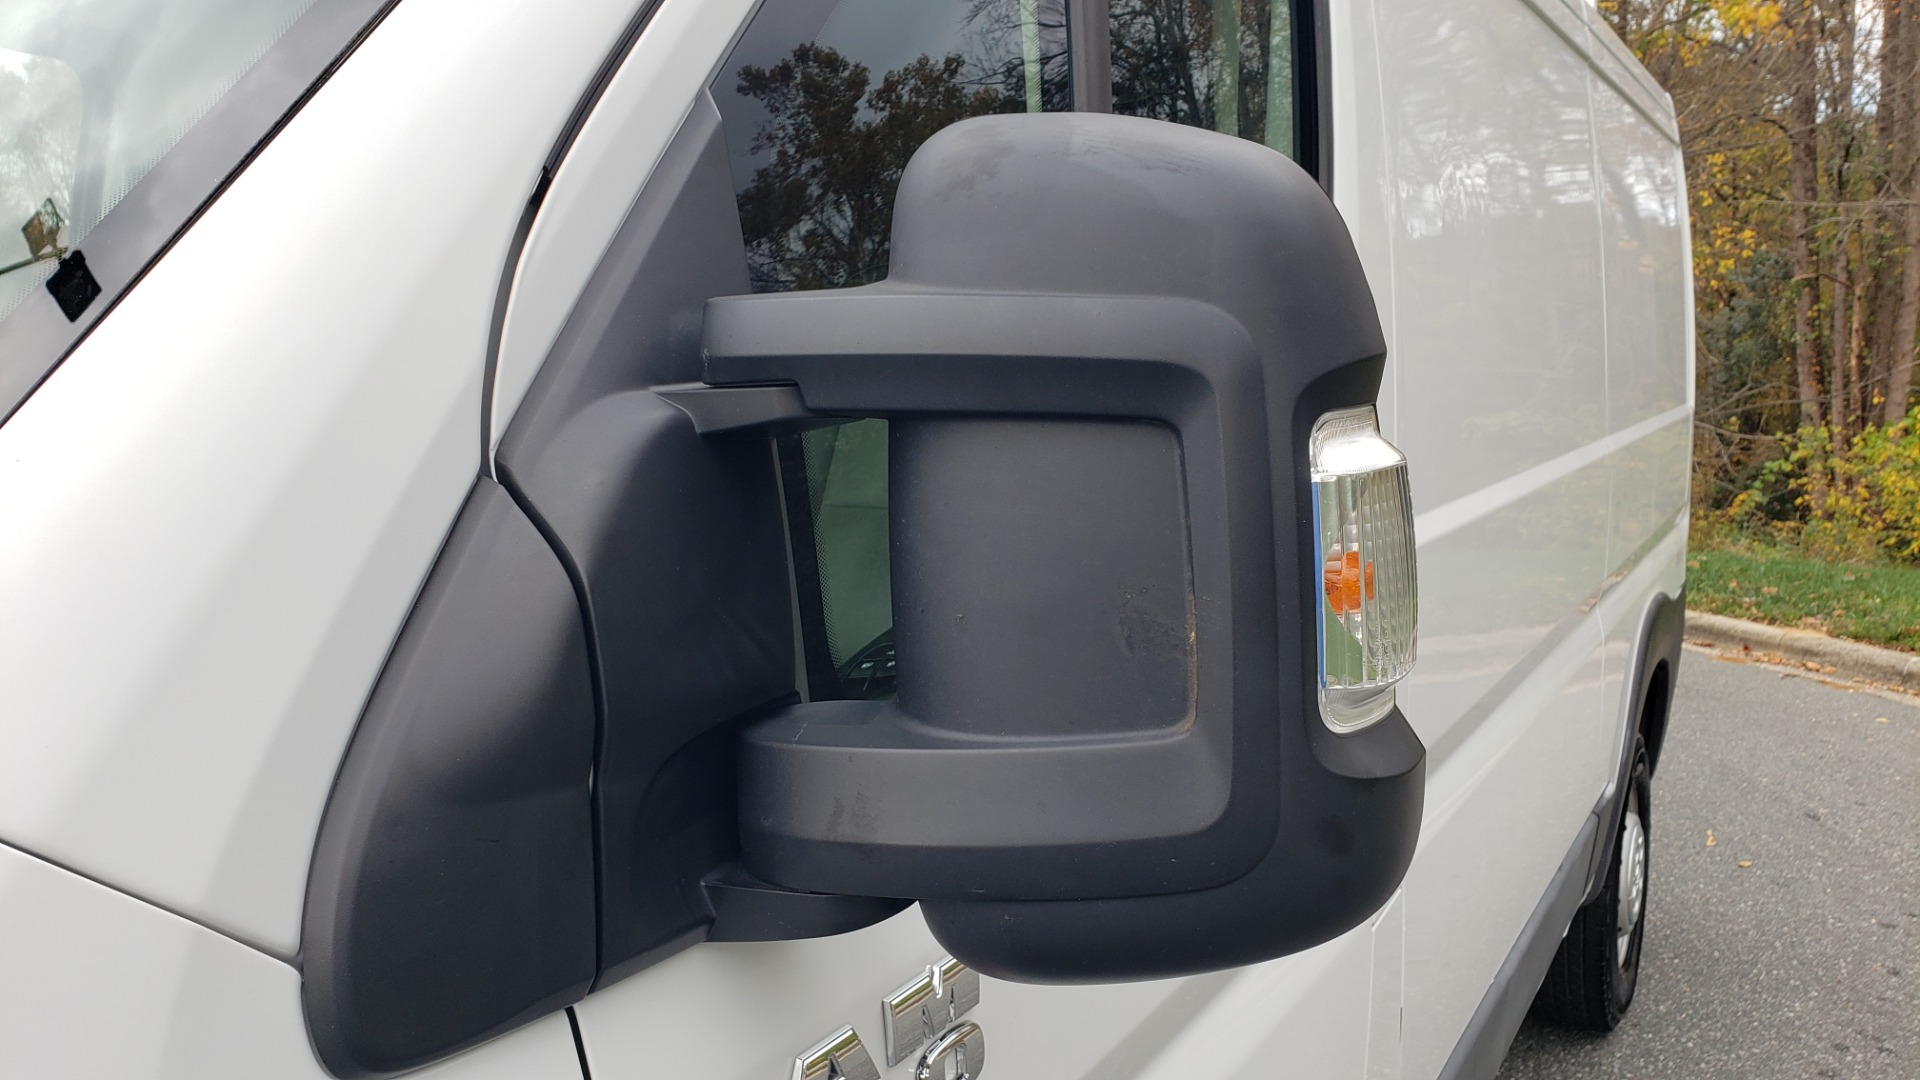 Used 2015 Ram PROMASTER CARGO VAN 136-INCH WB / LOW ROOF / LADDER RACK / INSIDE RACKS for sale $16,995 at Formula Imports in Charlotte NC 28227 24